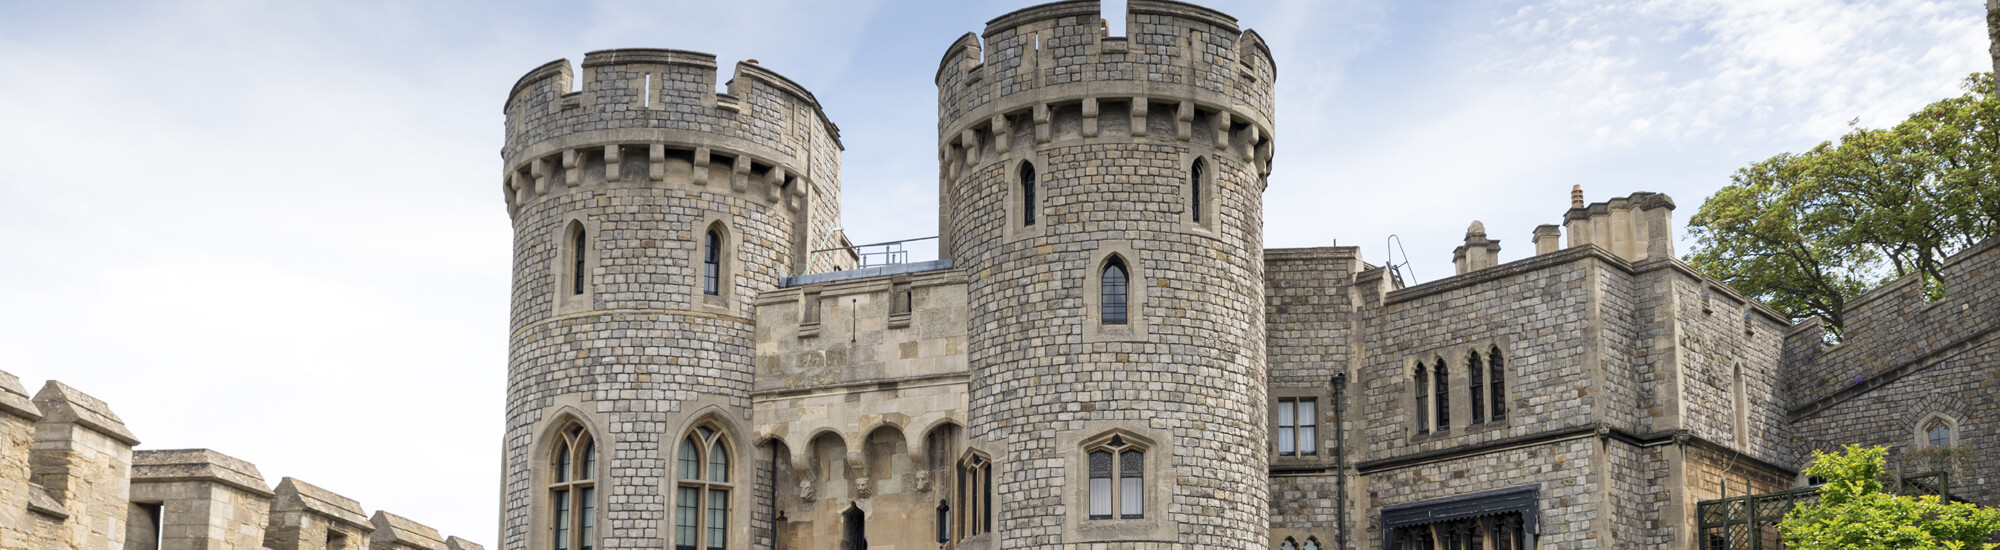 Windsor Castle Chauffeur Driven Tour